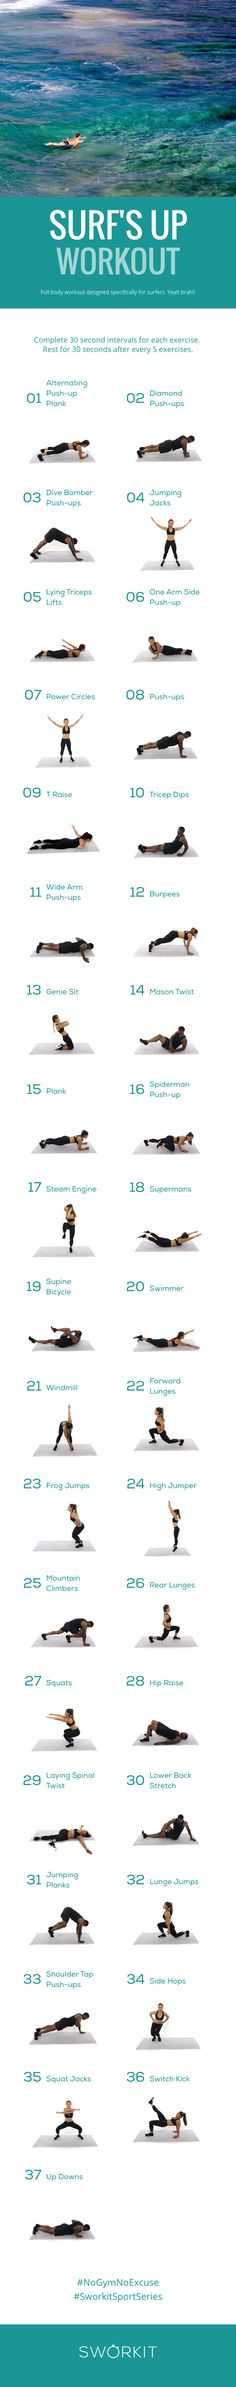 Surfer custom workout for Sworkit for iOS and Android. If you have the Sworkit app, you can import this workout directly into the app: http://yogisurprise.com/pinterest | Full body workout that strengthens arms, increases balance, and helps you